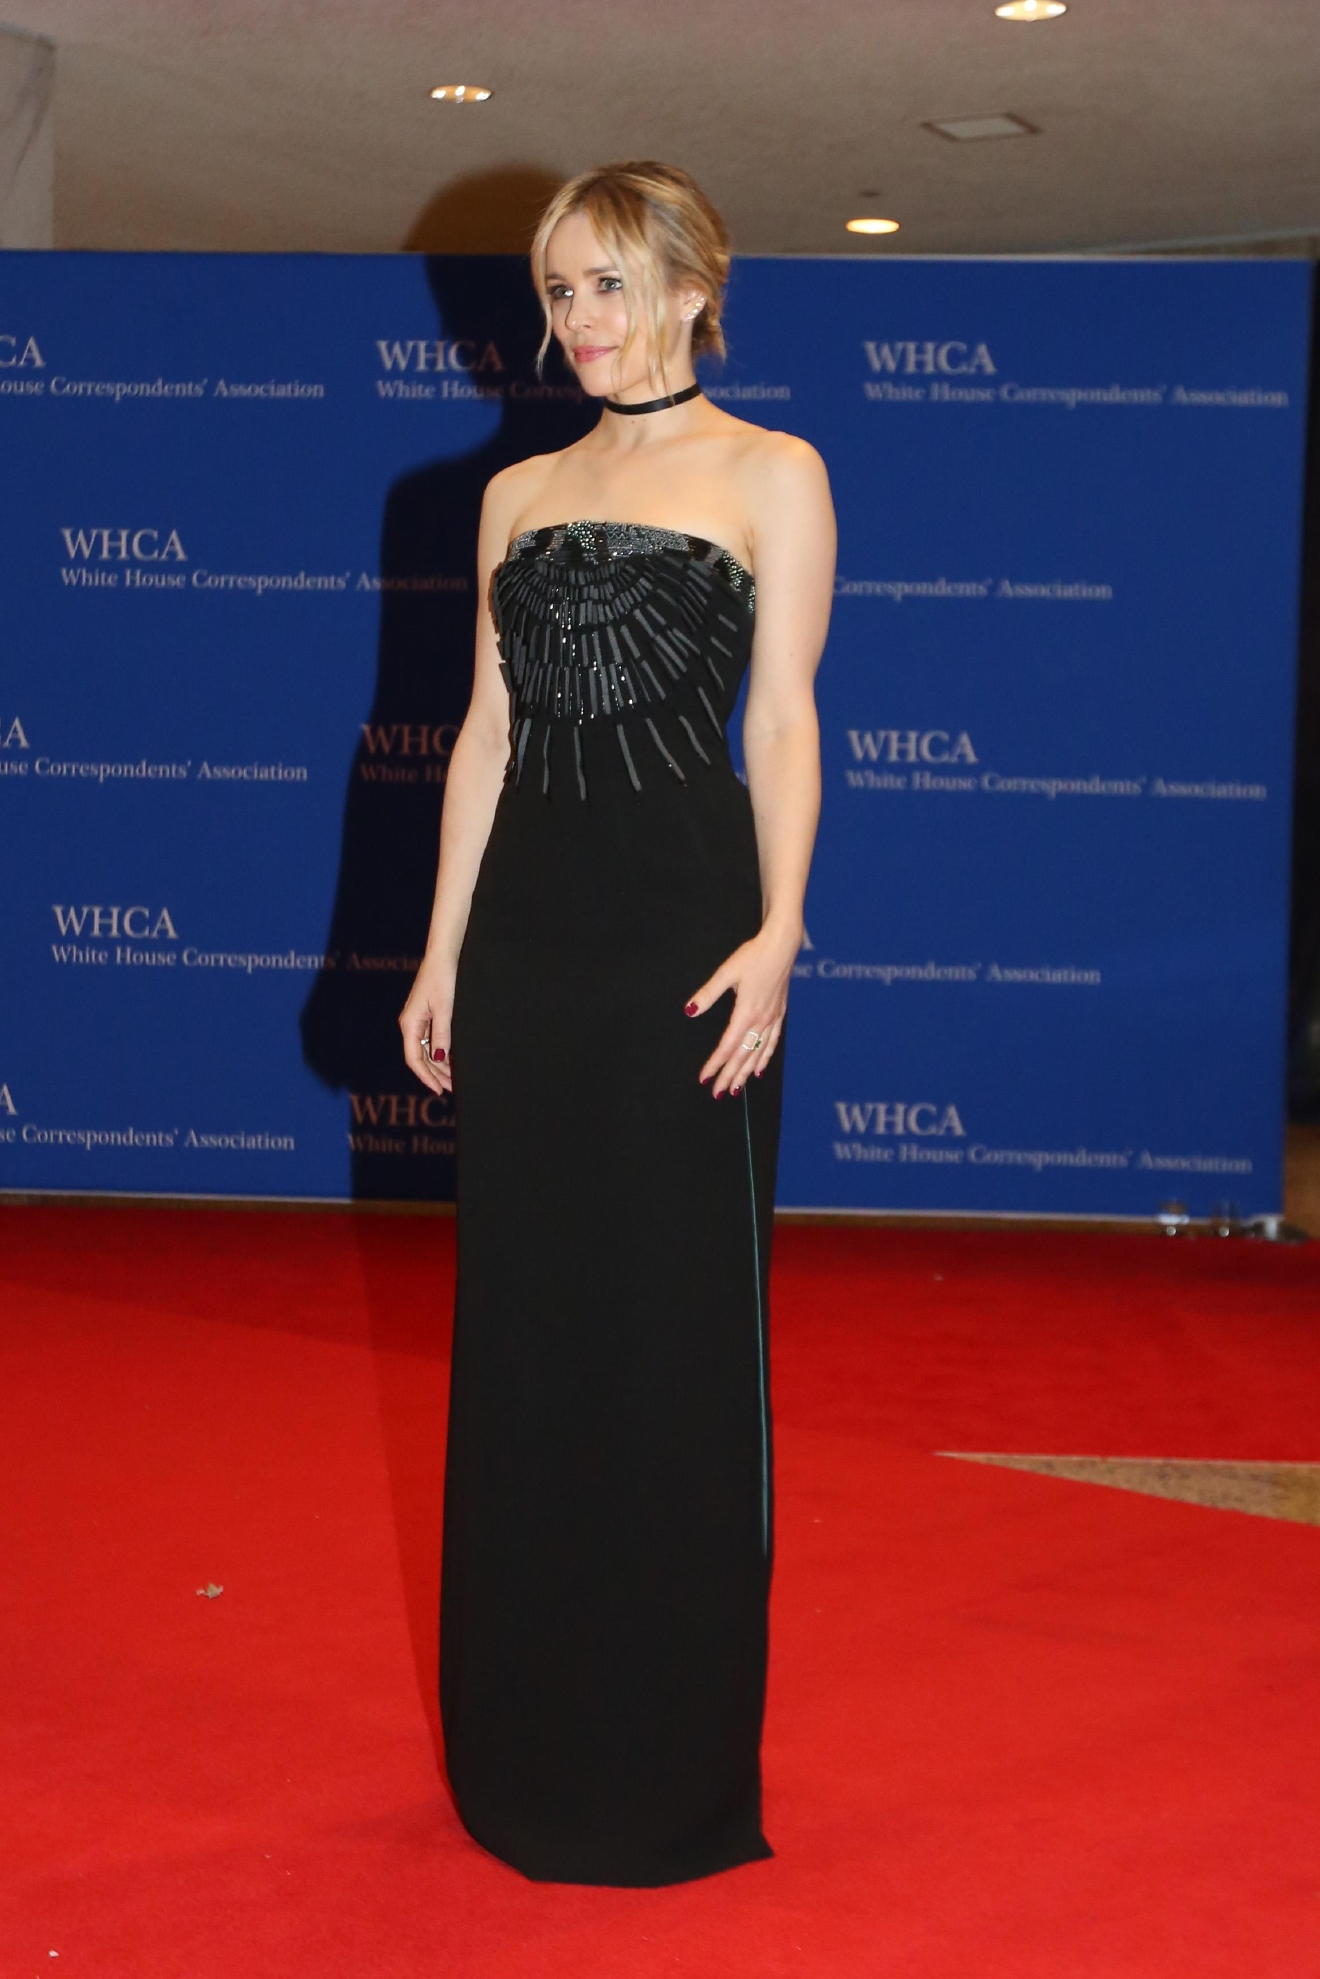 No one does simple, refined and chic better than Rachel McAdams. (Image: Amanda Andrade-Rhoades/ DC Refined)